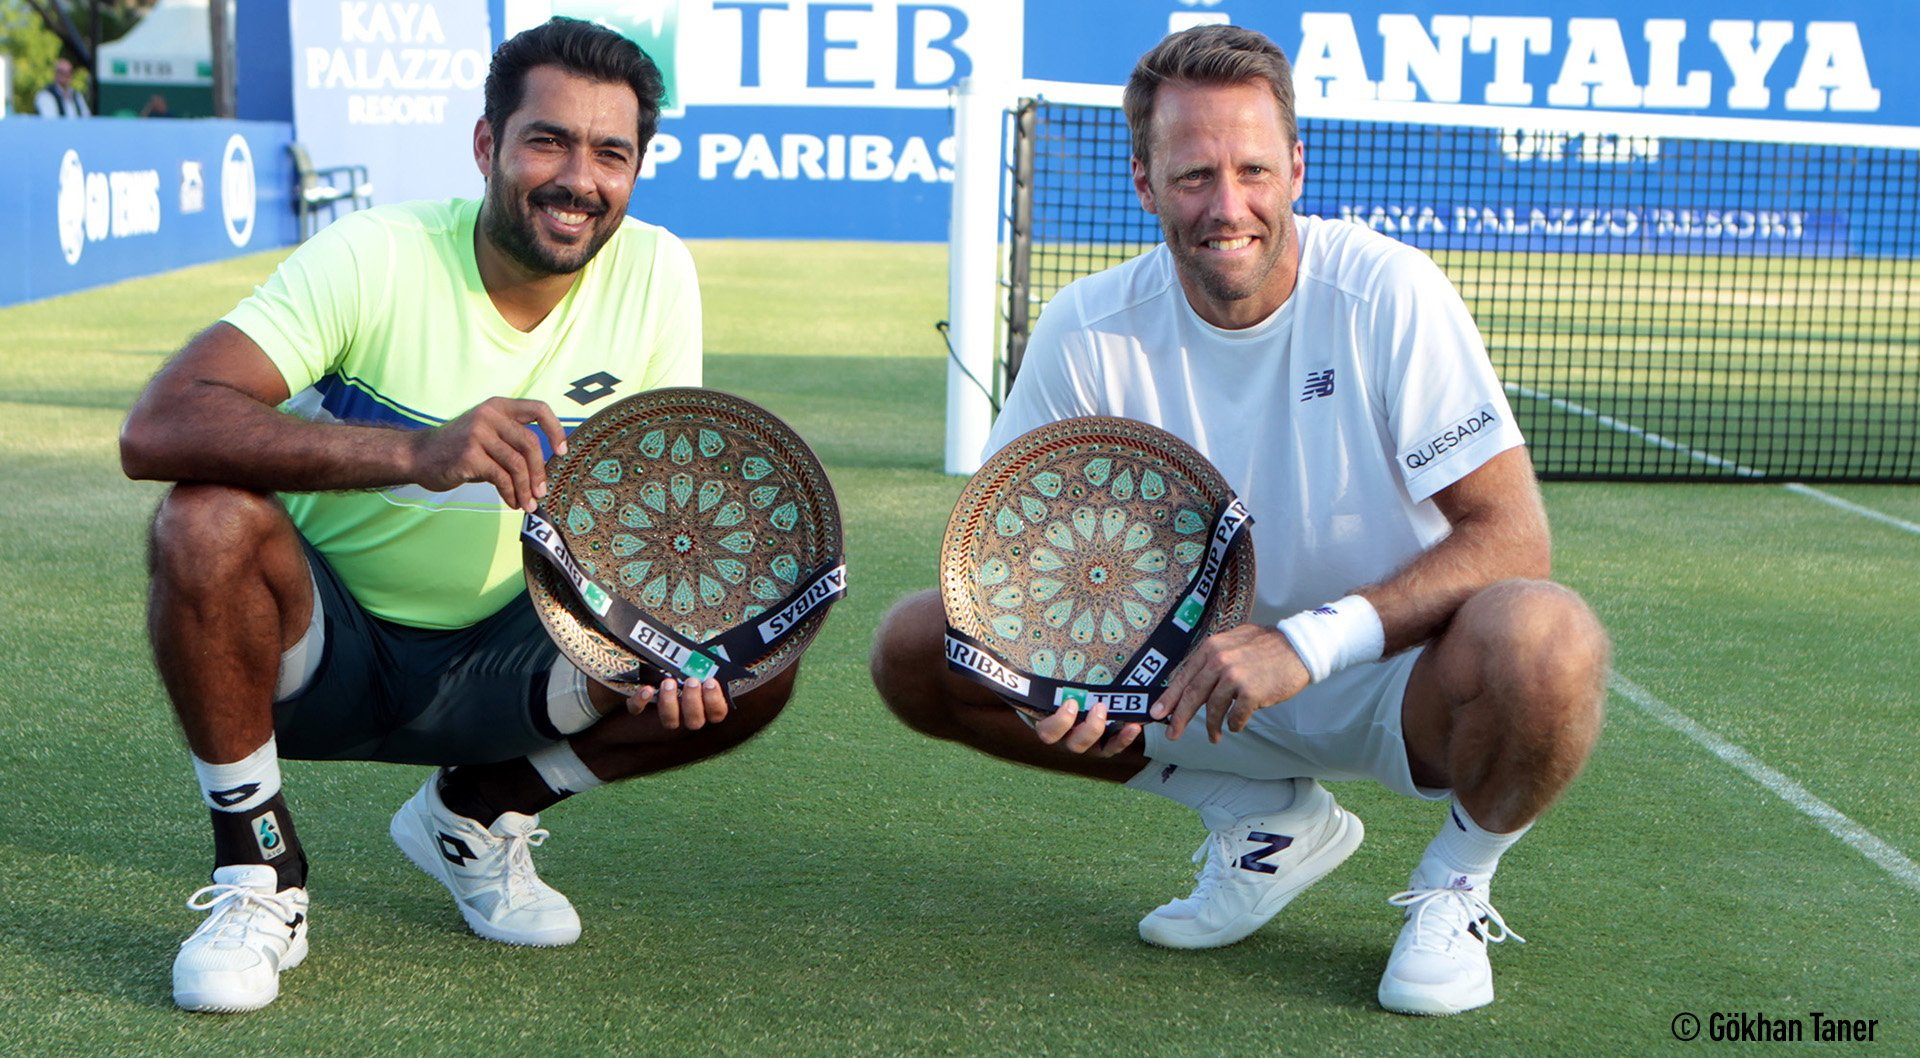 .@aisamhqureshi & Robert Lindstedt claim the inaugural @antalyaopen doubles ��! Read: https://t.co/fjGa9cfQyW https://t.co/69NjfxzkWj